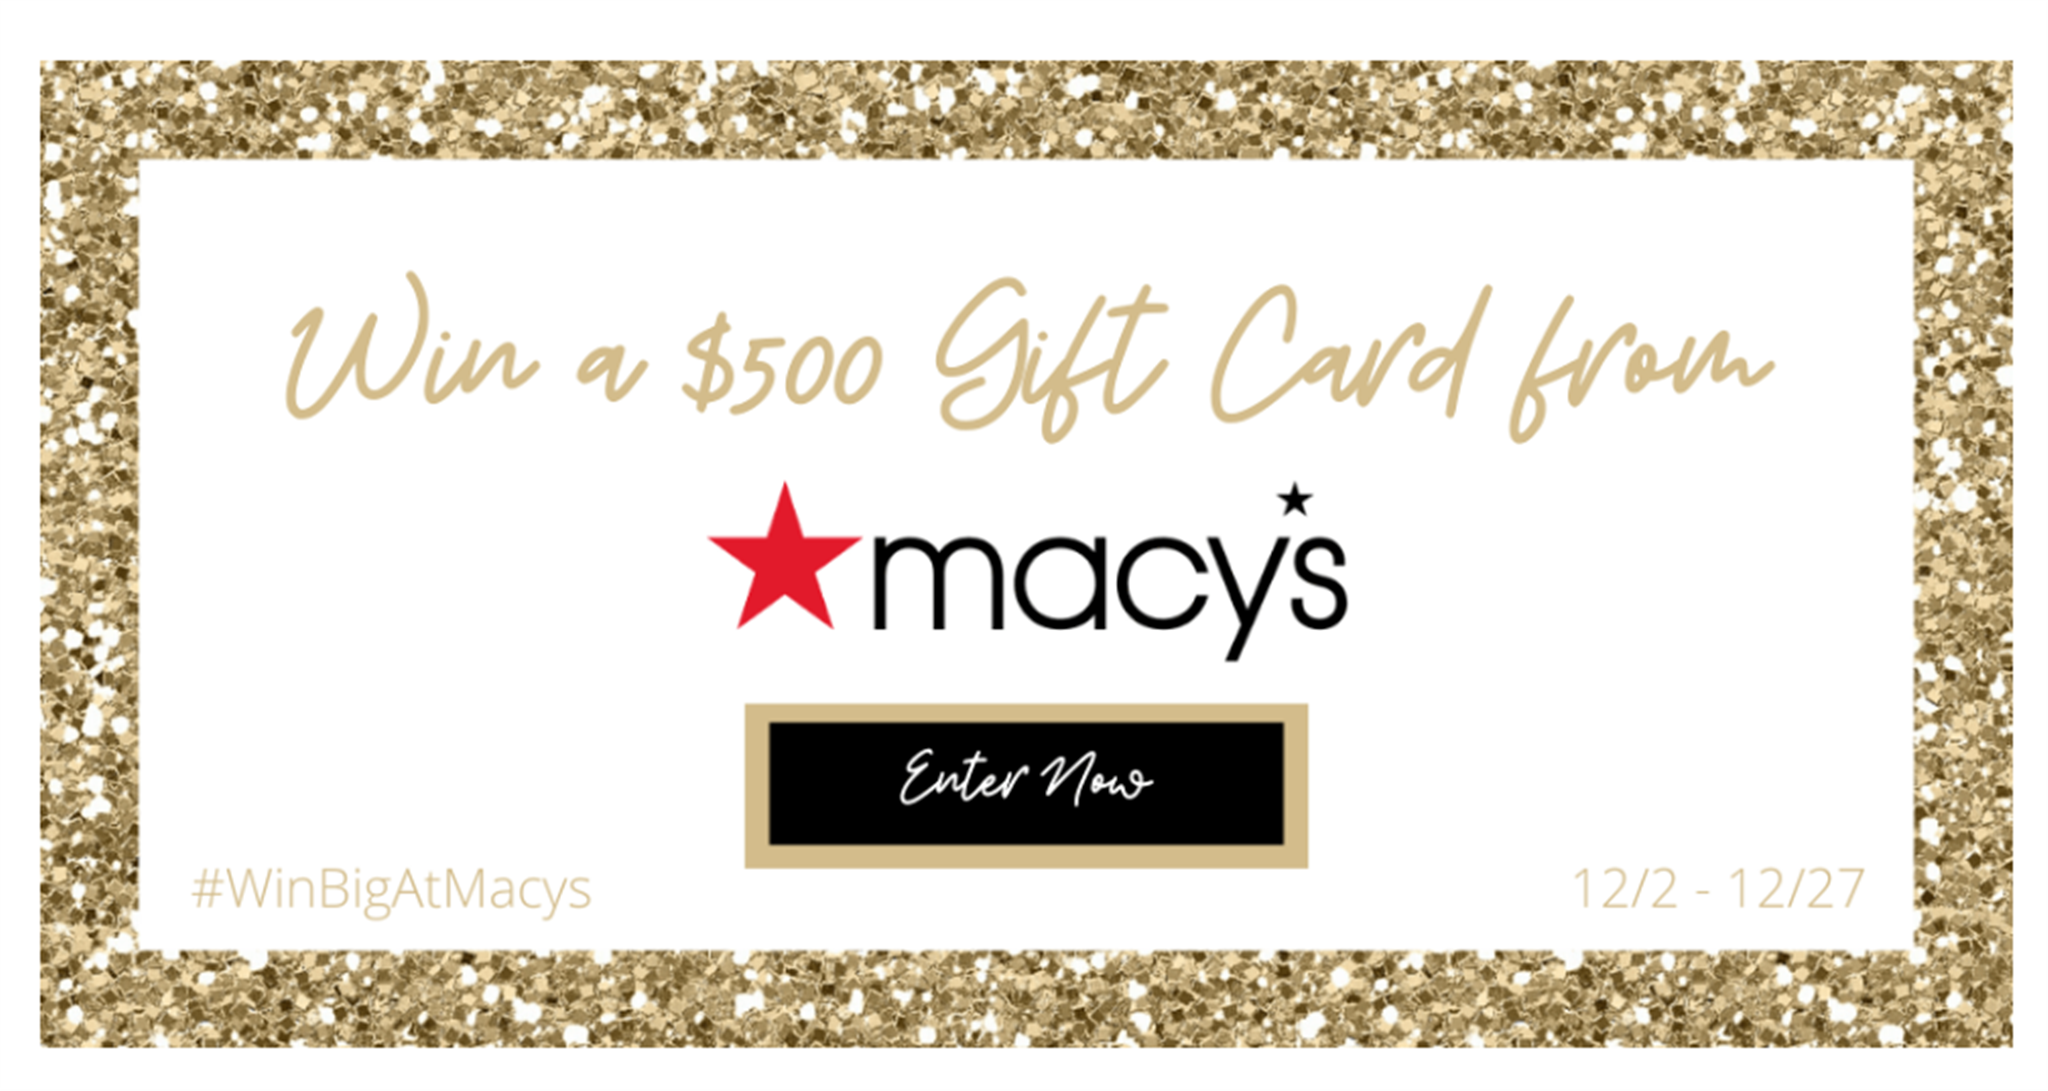 Enter To Win a $500 Gift Cards From Macy's – SIGN UP ENDS 12/27!